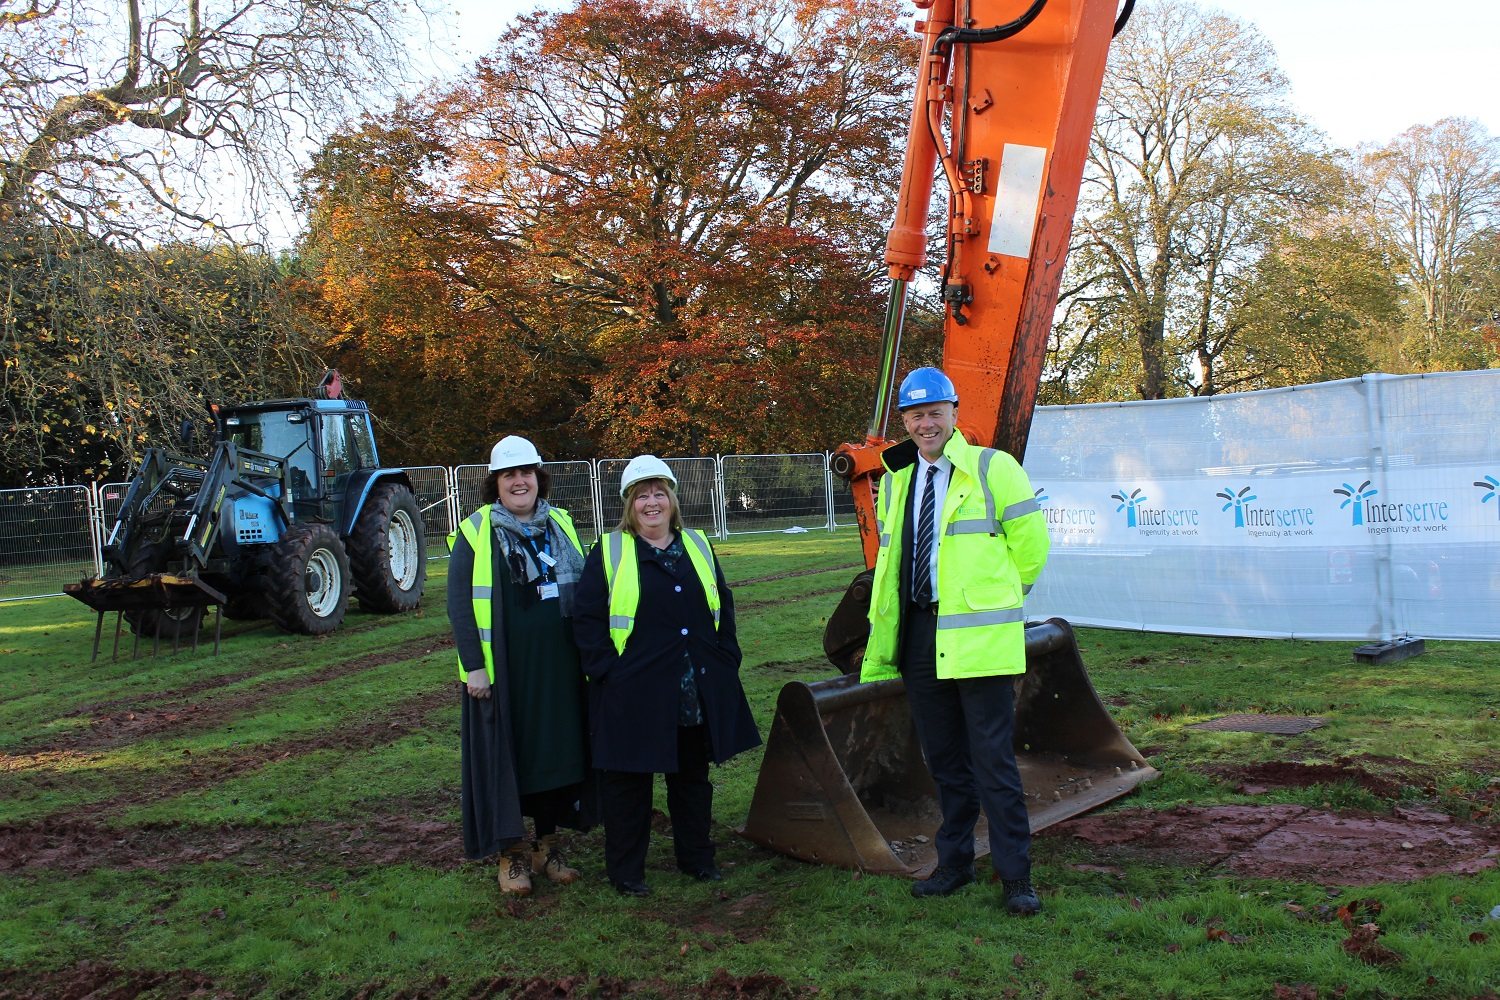 Work starts on new £5.5m PICU